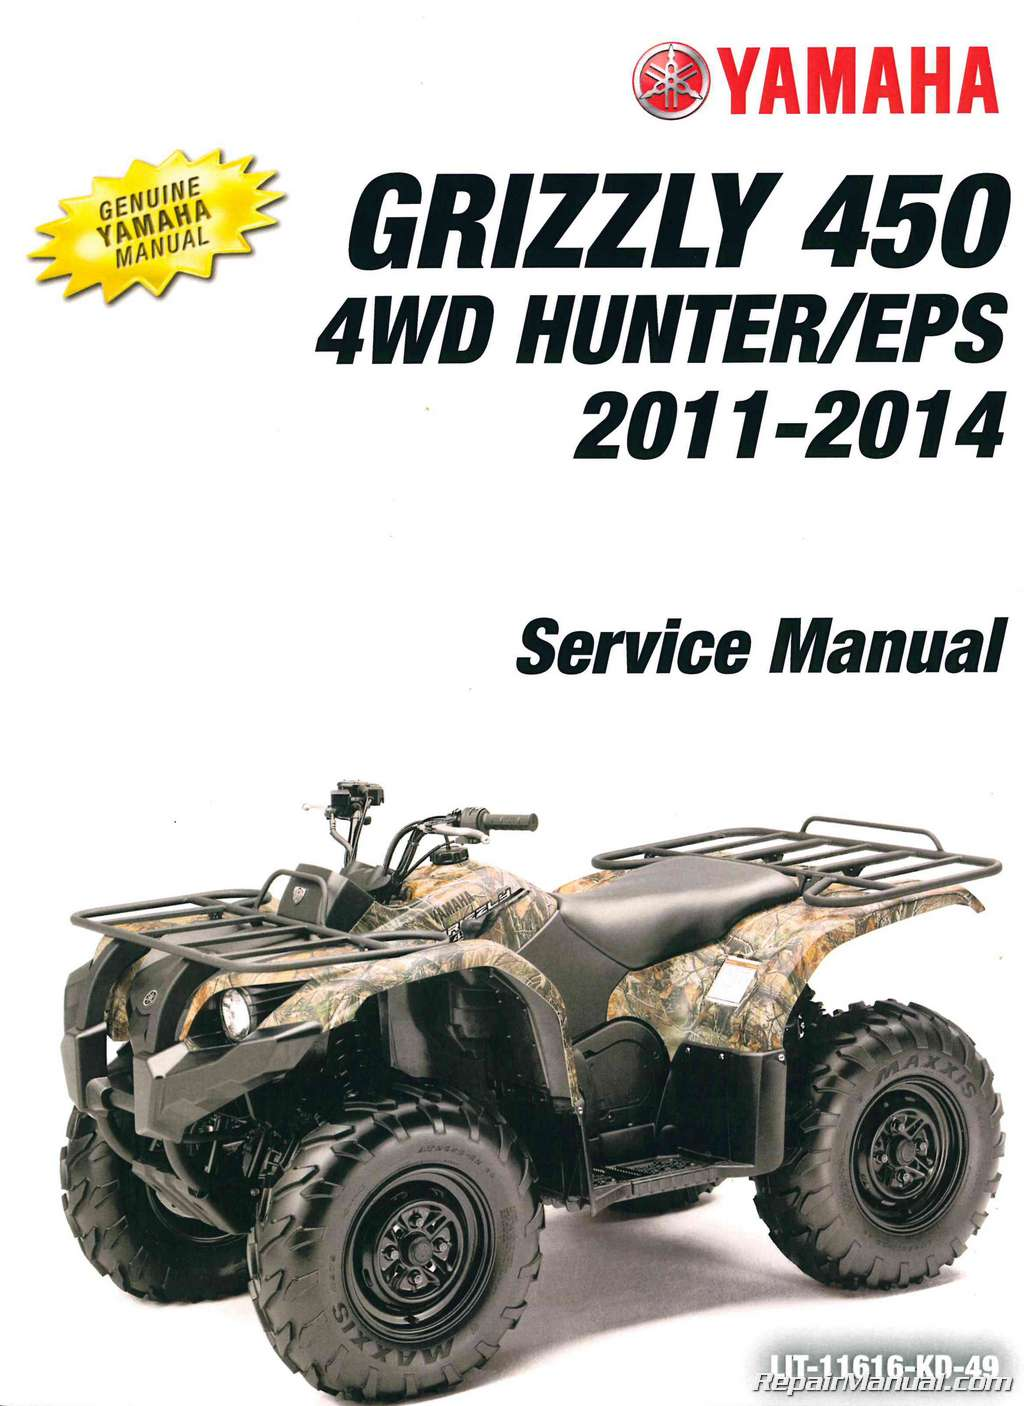 yamaha grizzly service manual open source user manual u2022 rh dramatic varieties com 2007 yamaha grizzly 700 service manual free download 2007 yamaha grizzly 700 service manual pdf